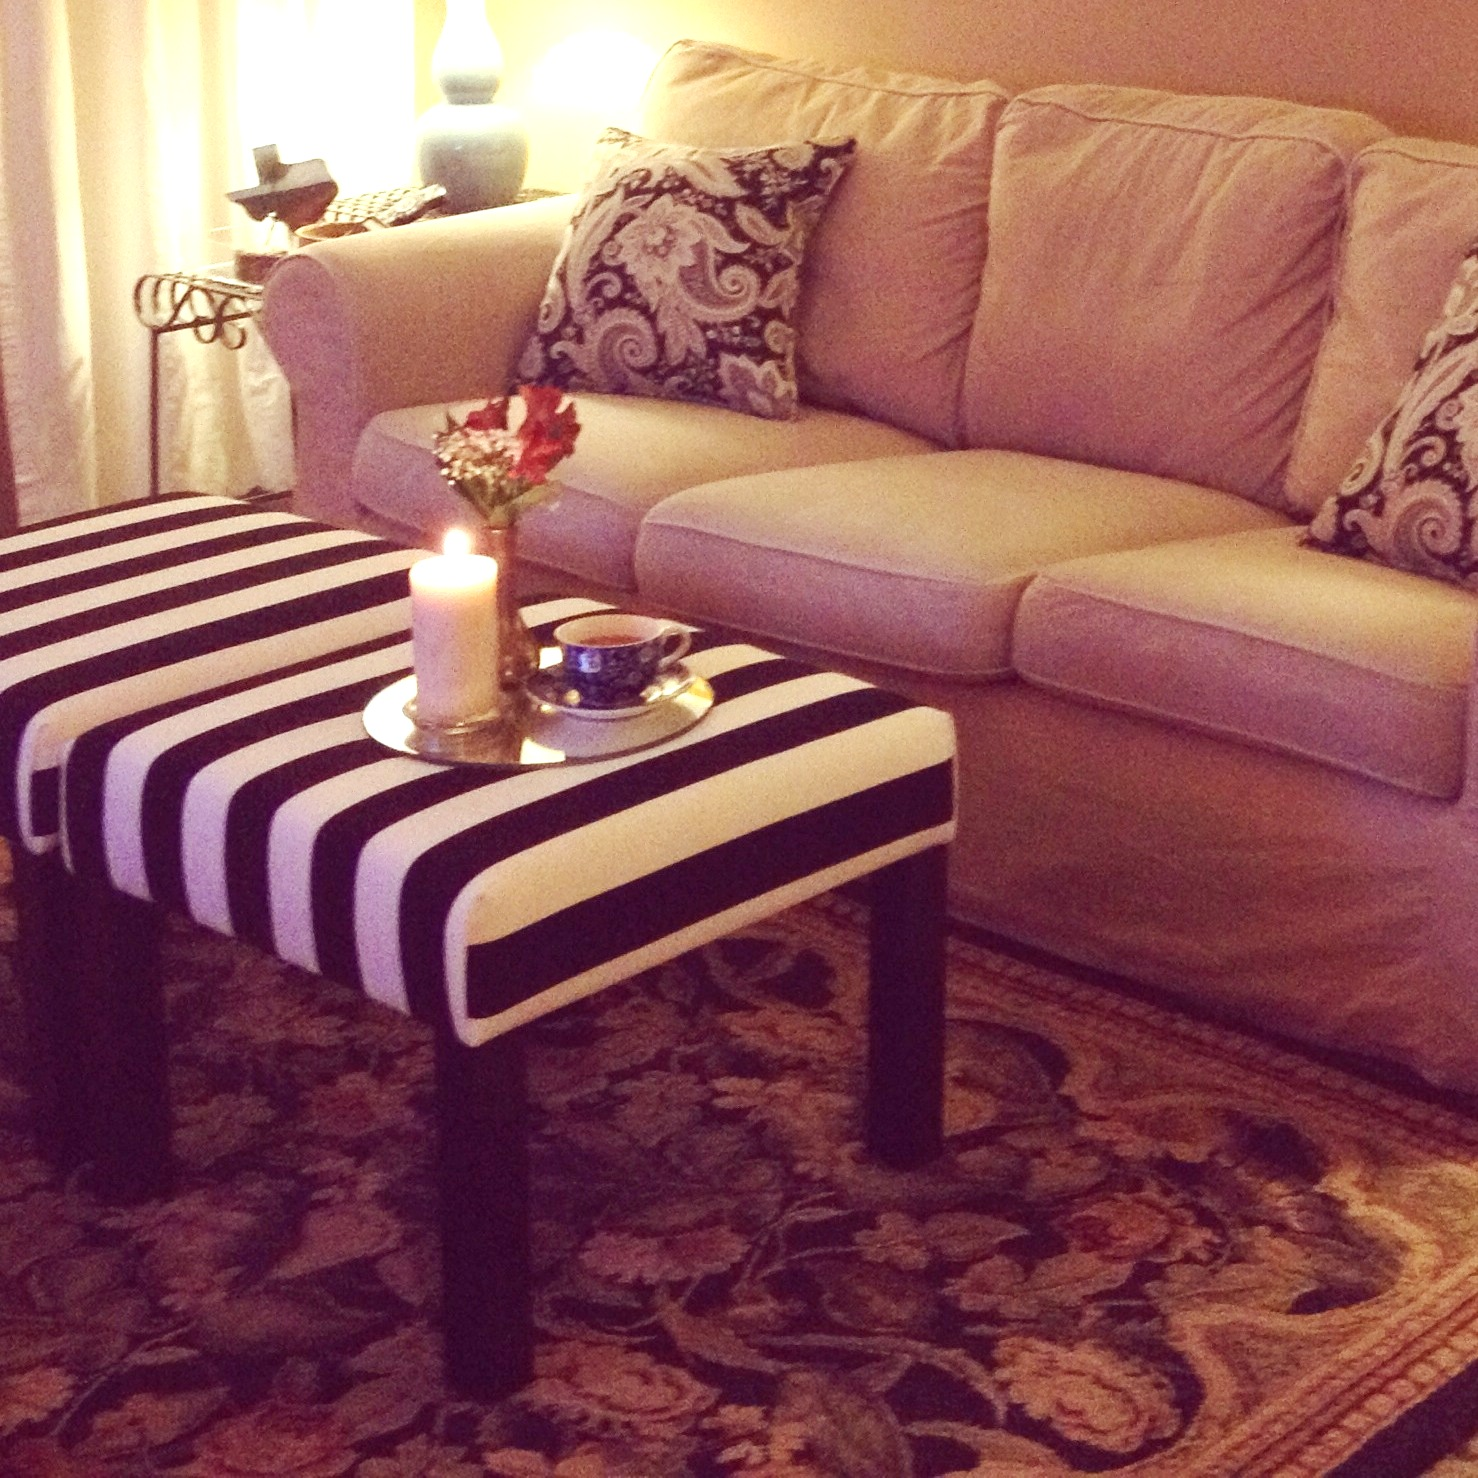 Turned To Design: Ikea Lack Side Tables Turned Ottomans